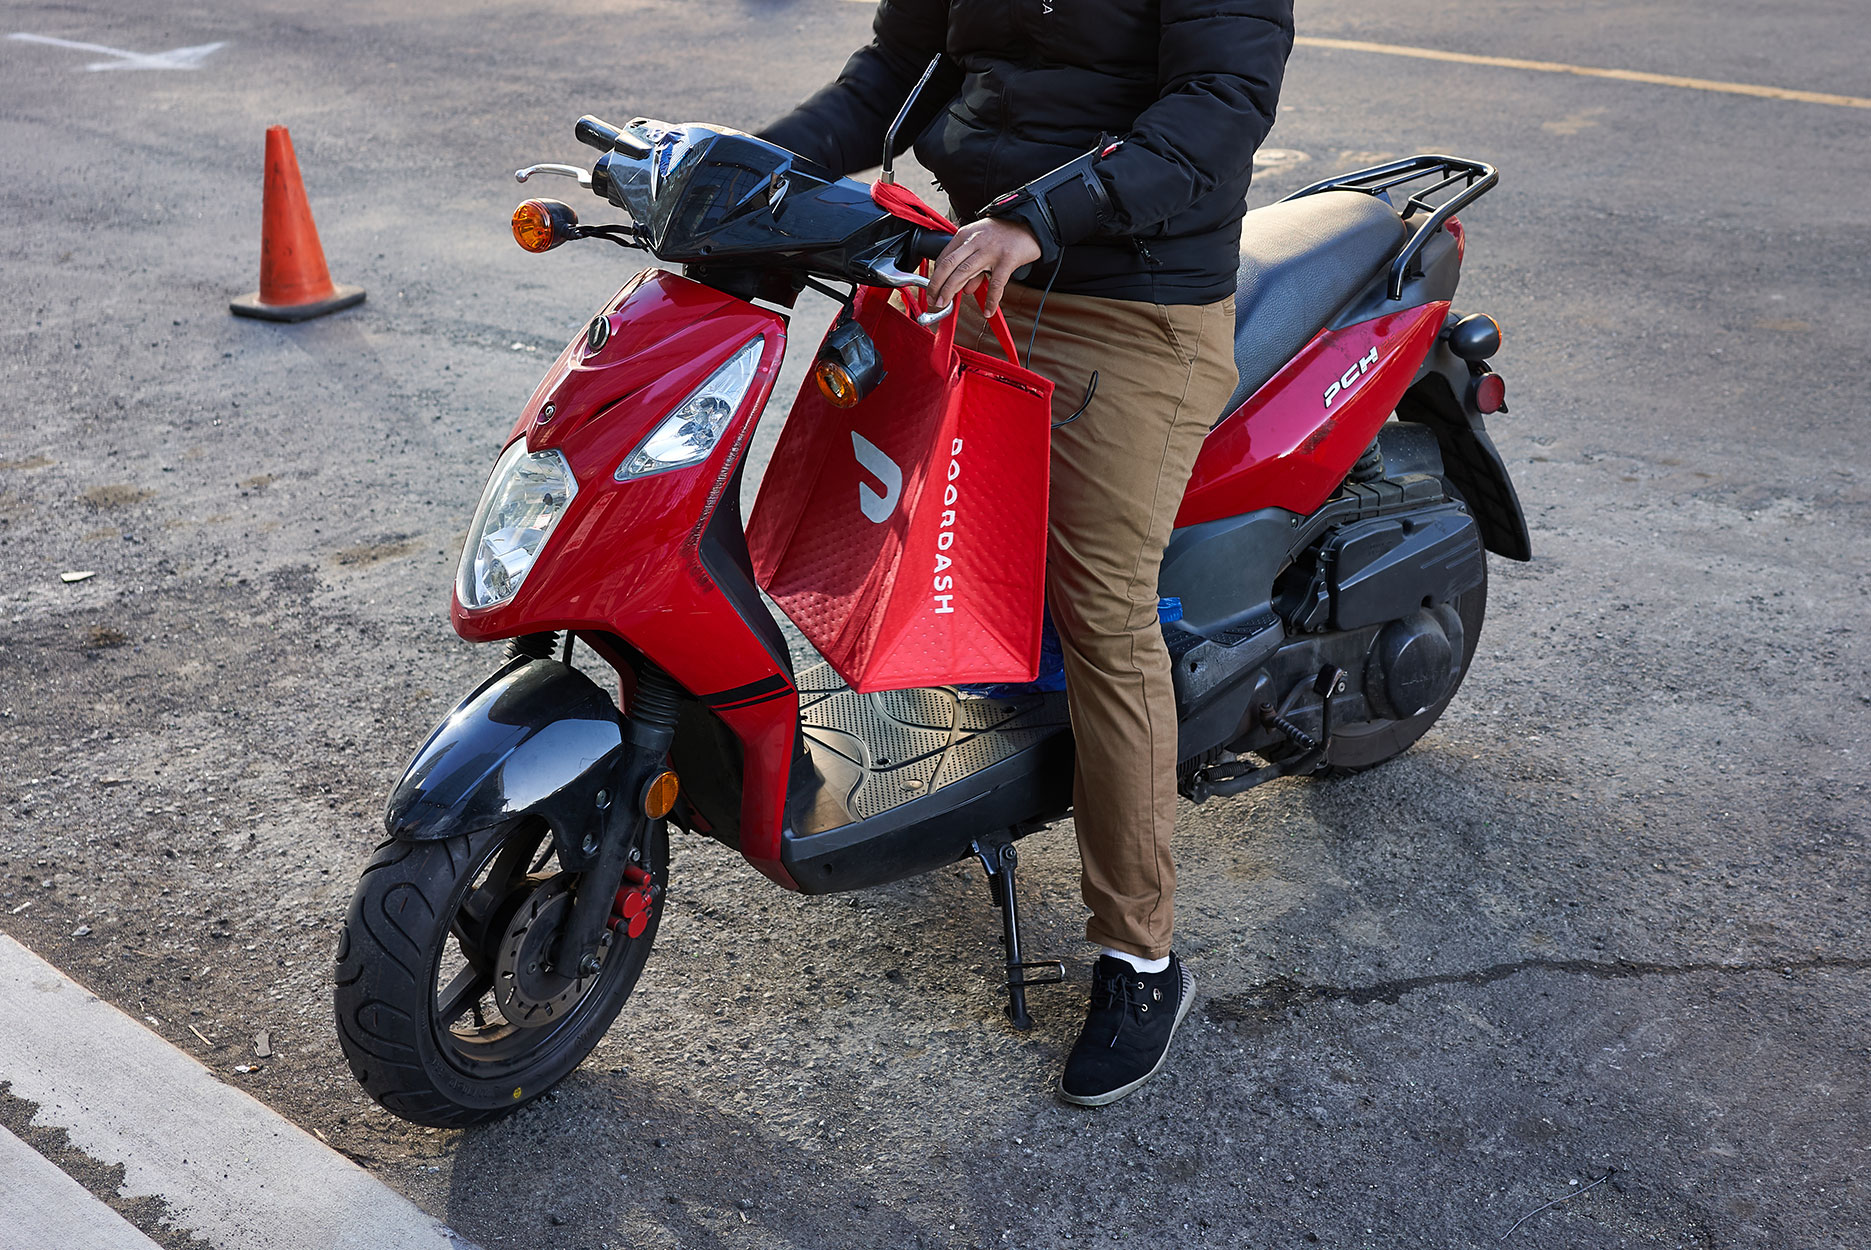 A DoorDash delivery worker on his motorcycle in the SoMa neighborhood of San Francisco, California.